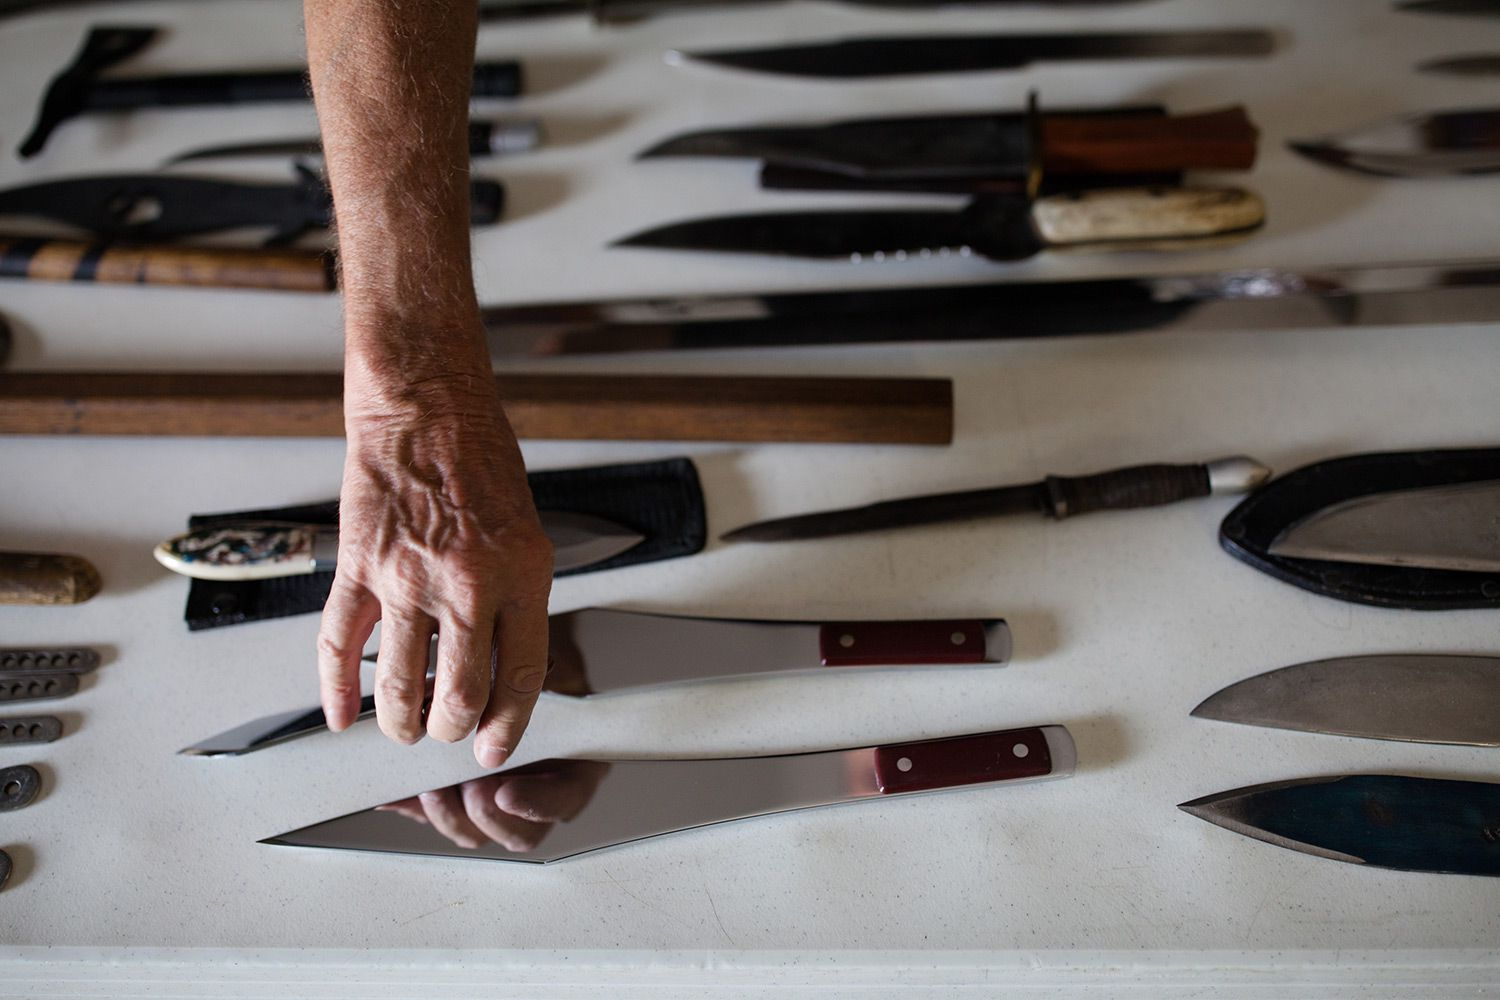 Cliff Hill, knife collector and world champion knife thrower, shows his collection at the International Knife Throwers Hall of Fame in Austin on July 13, 2017.